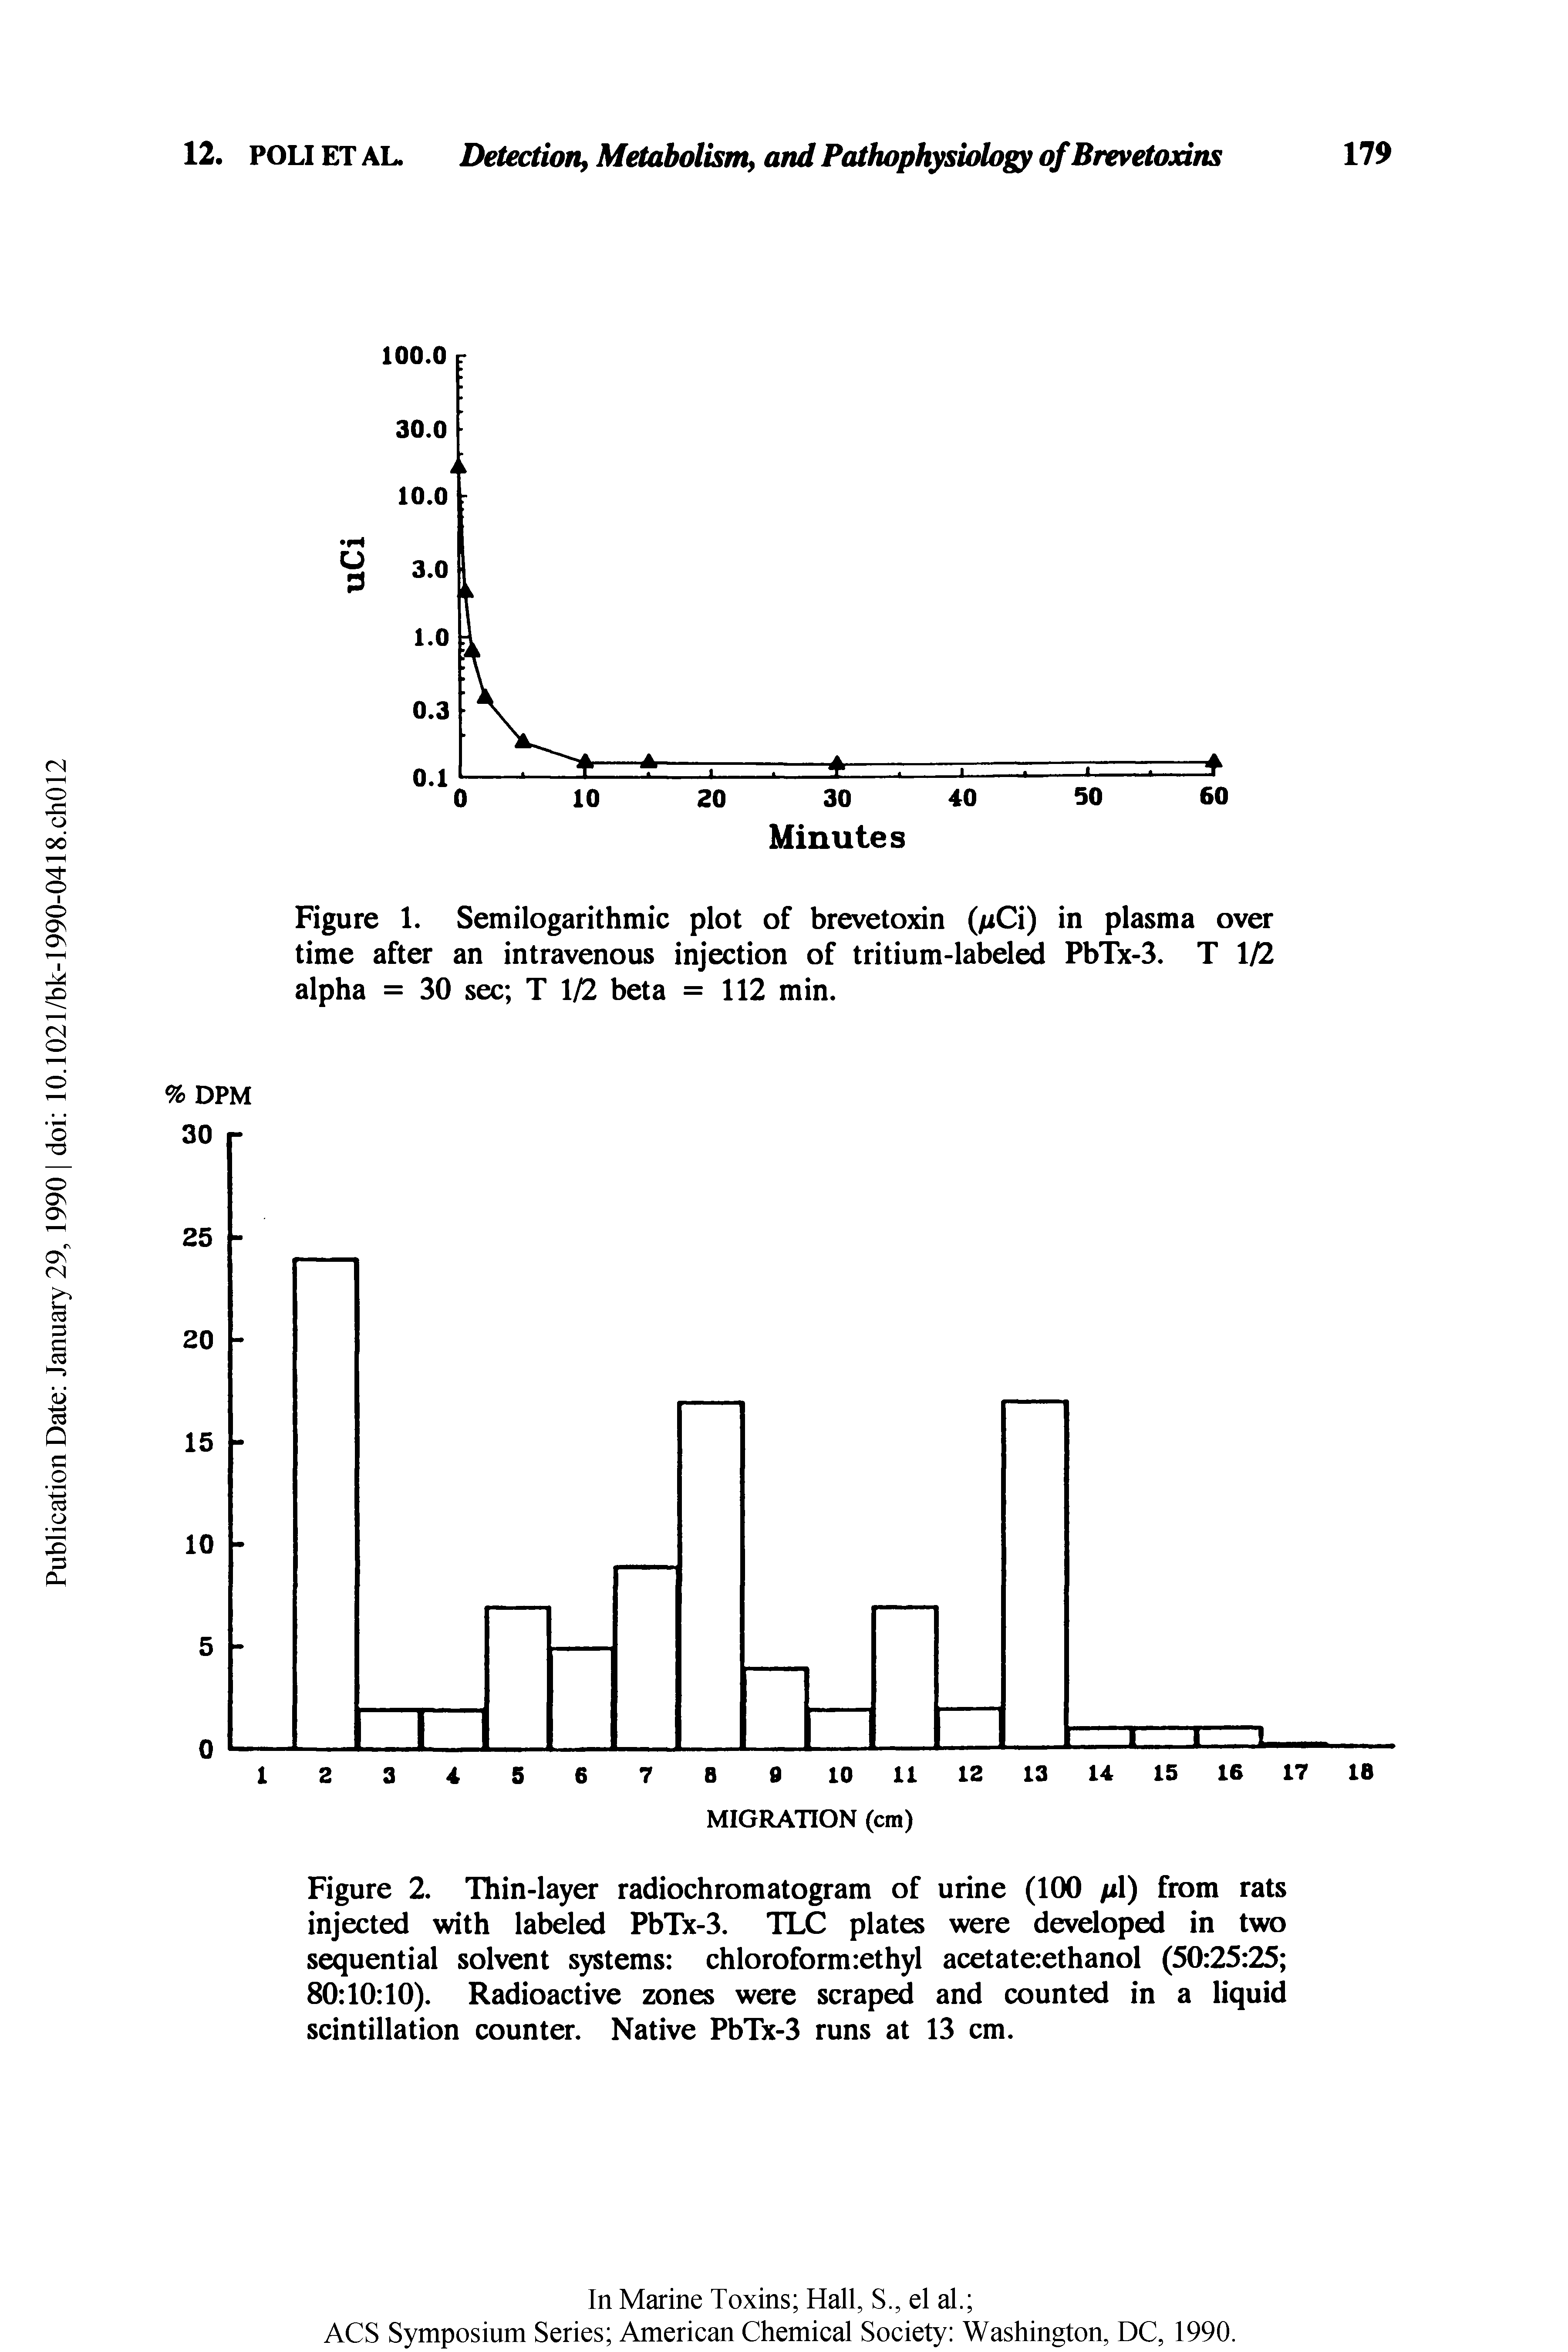 Figure 1. Semilogarithmic plot of brevetoxin ( iCi) in plasma over time after an intravenous injection of tritium-labeled PbTx-3. T 1/2 alpha = 30 sec T 1/2 beta = 112 min.